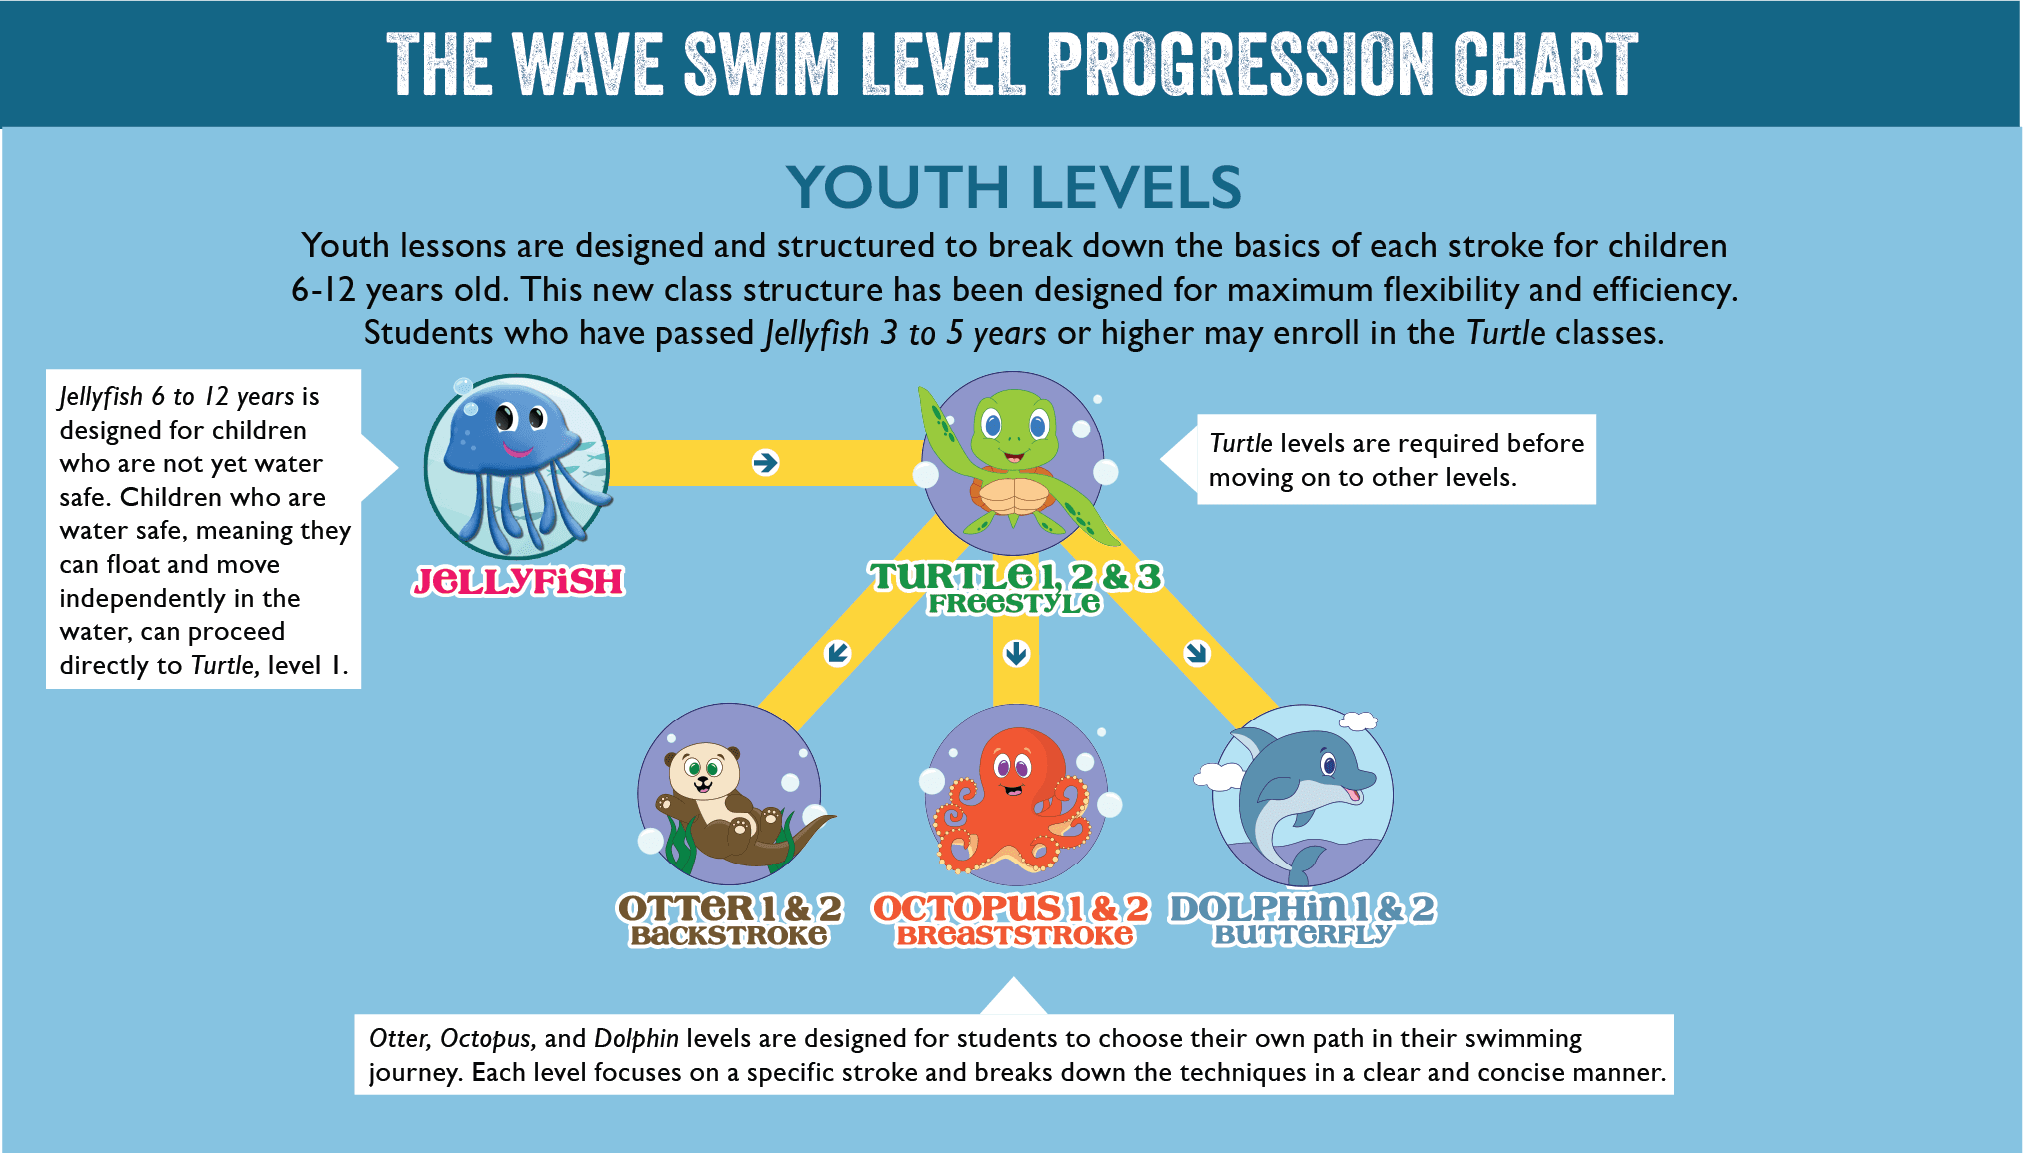 Youth Levels Swim Progression Chart